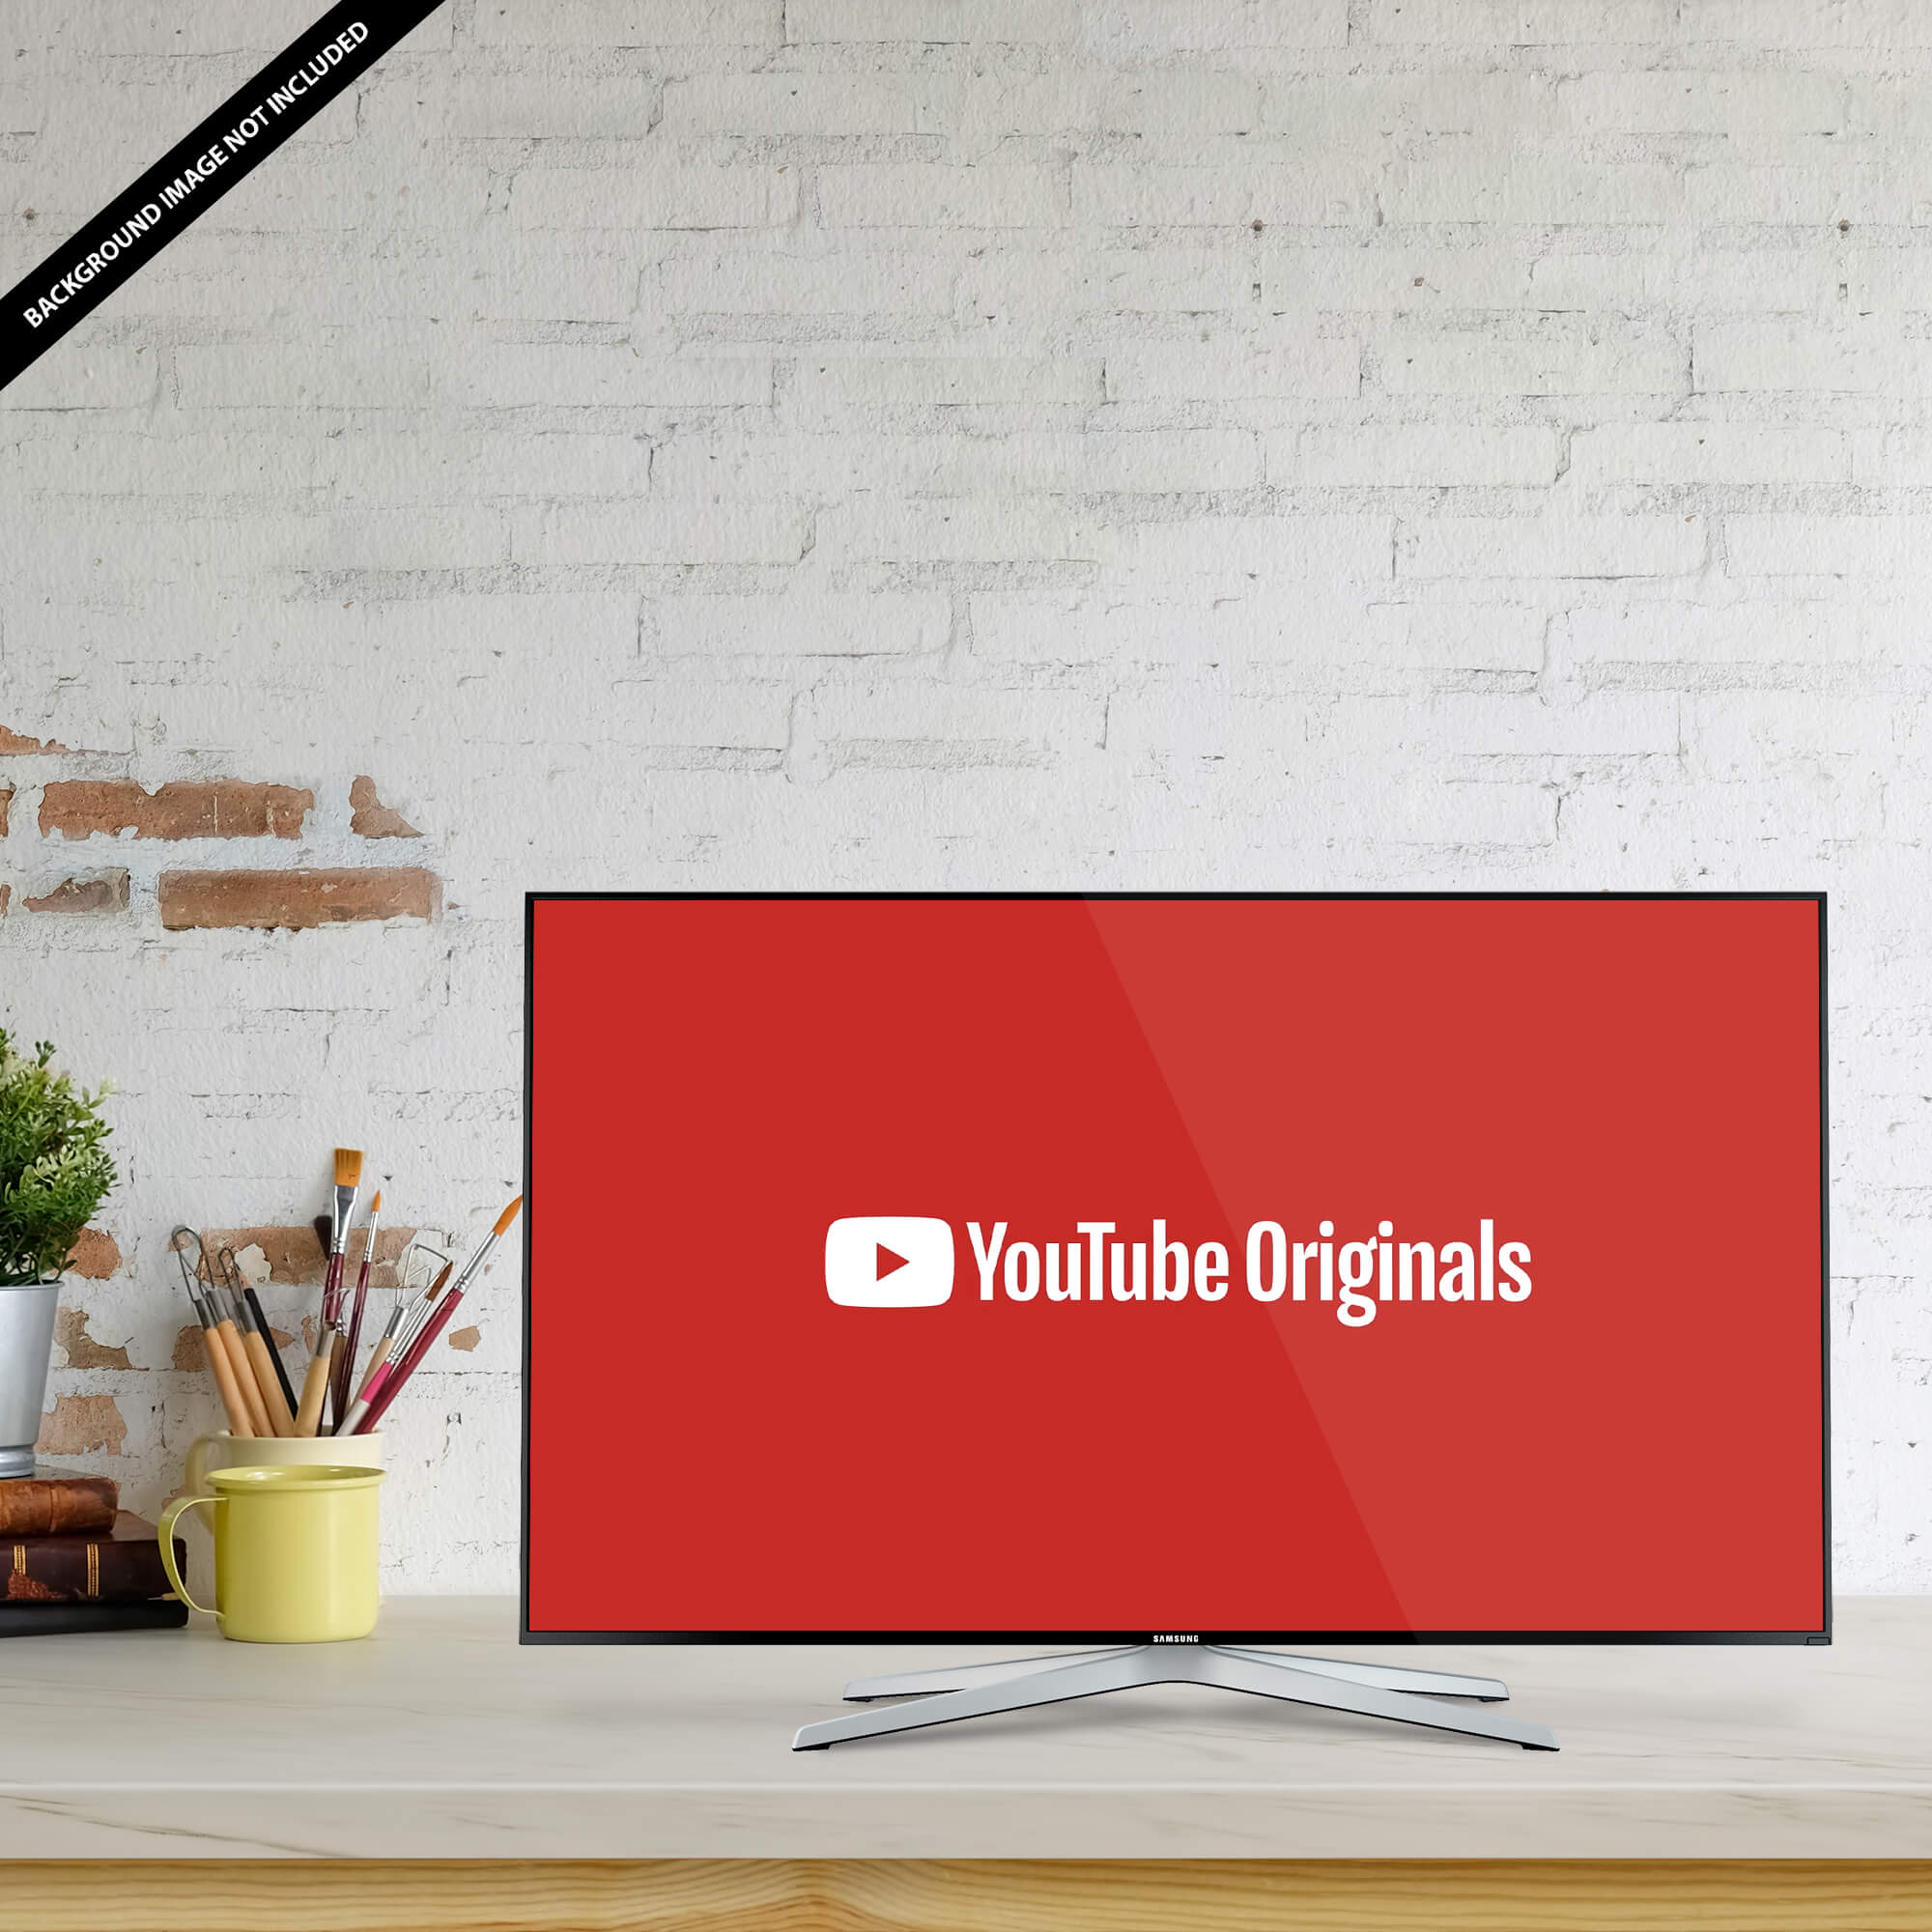 Free YouTube Page Mockup PSD Template